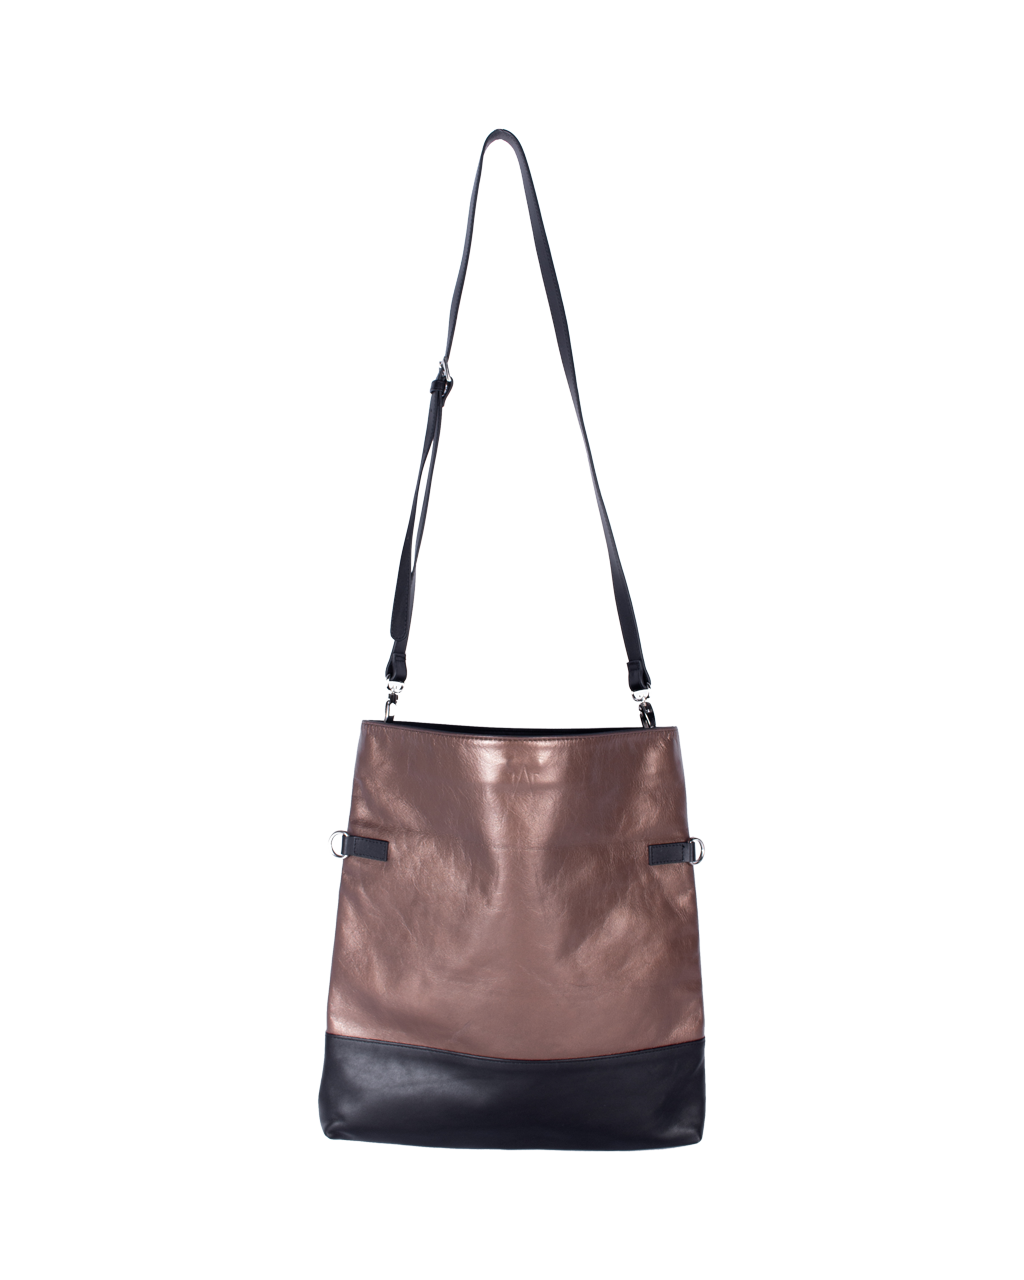 TAT_normcore_14583_twotone crossbody shoulder bag__ bronze